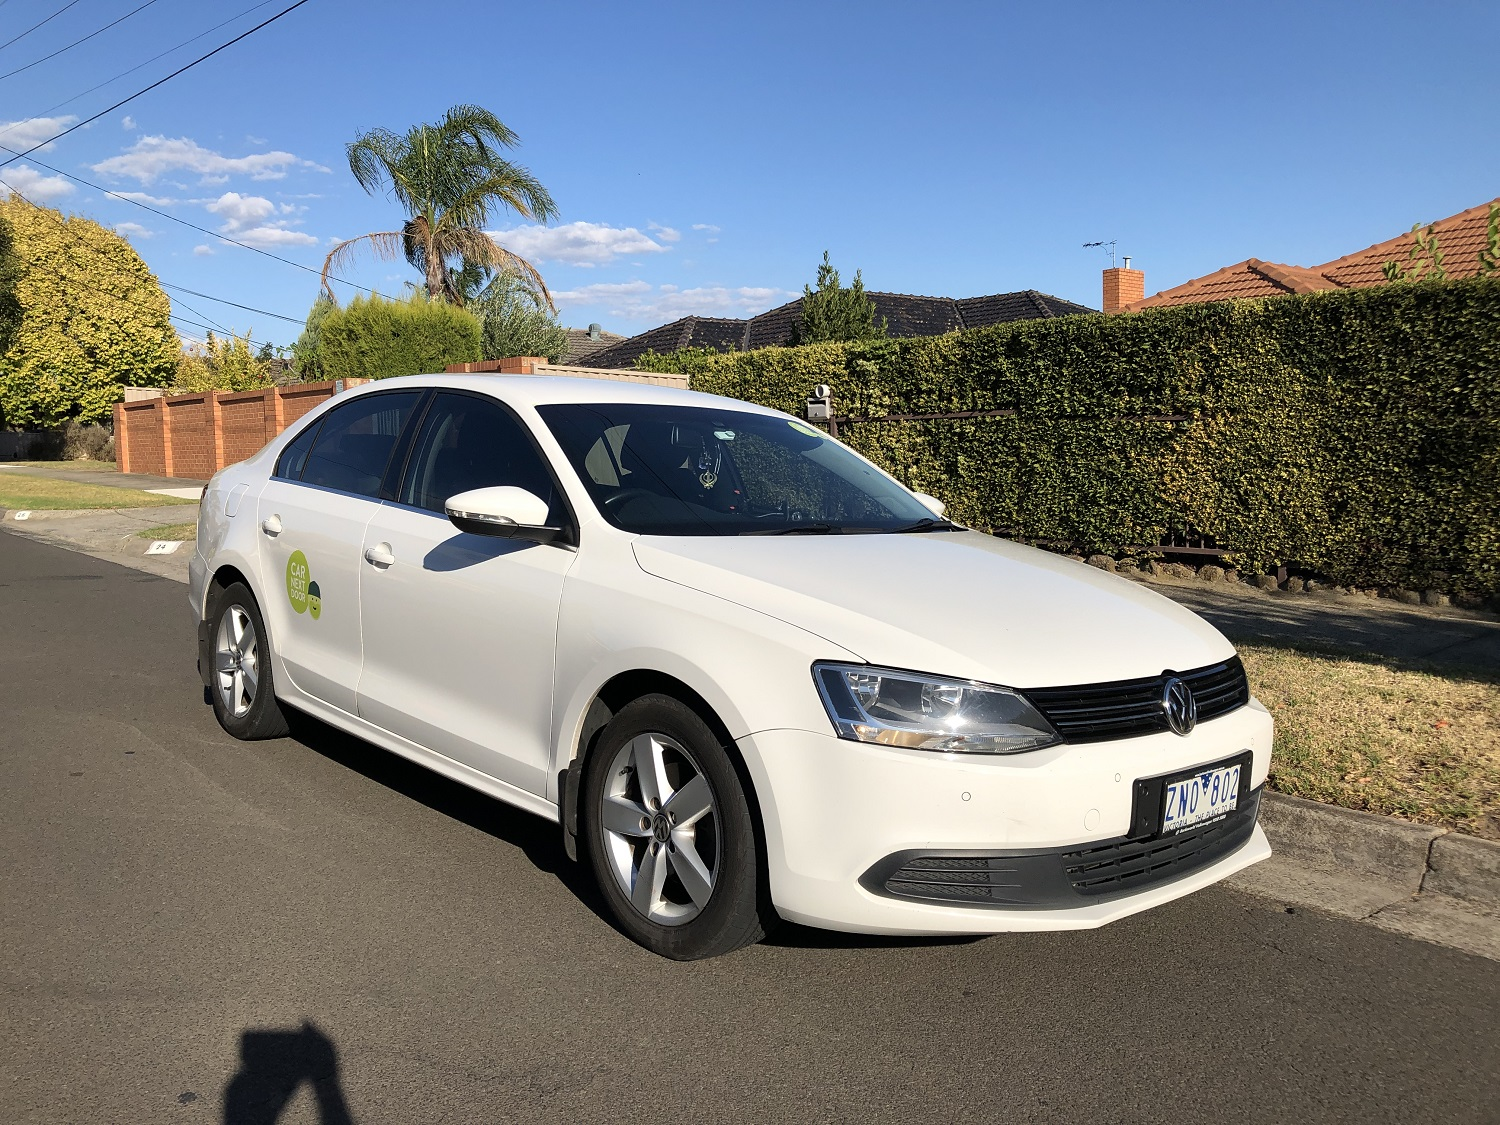 Picture of Simranjit Singh's 2013 Volkswagen Sedan